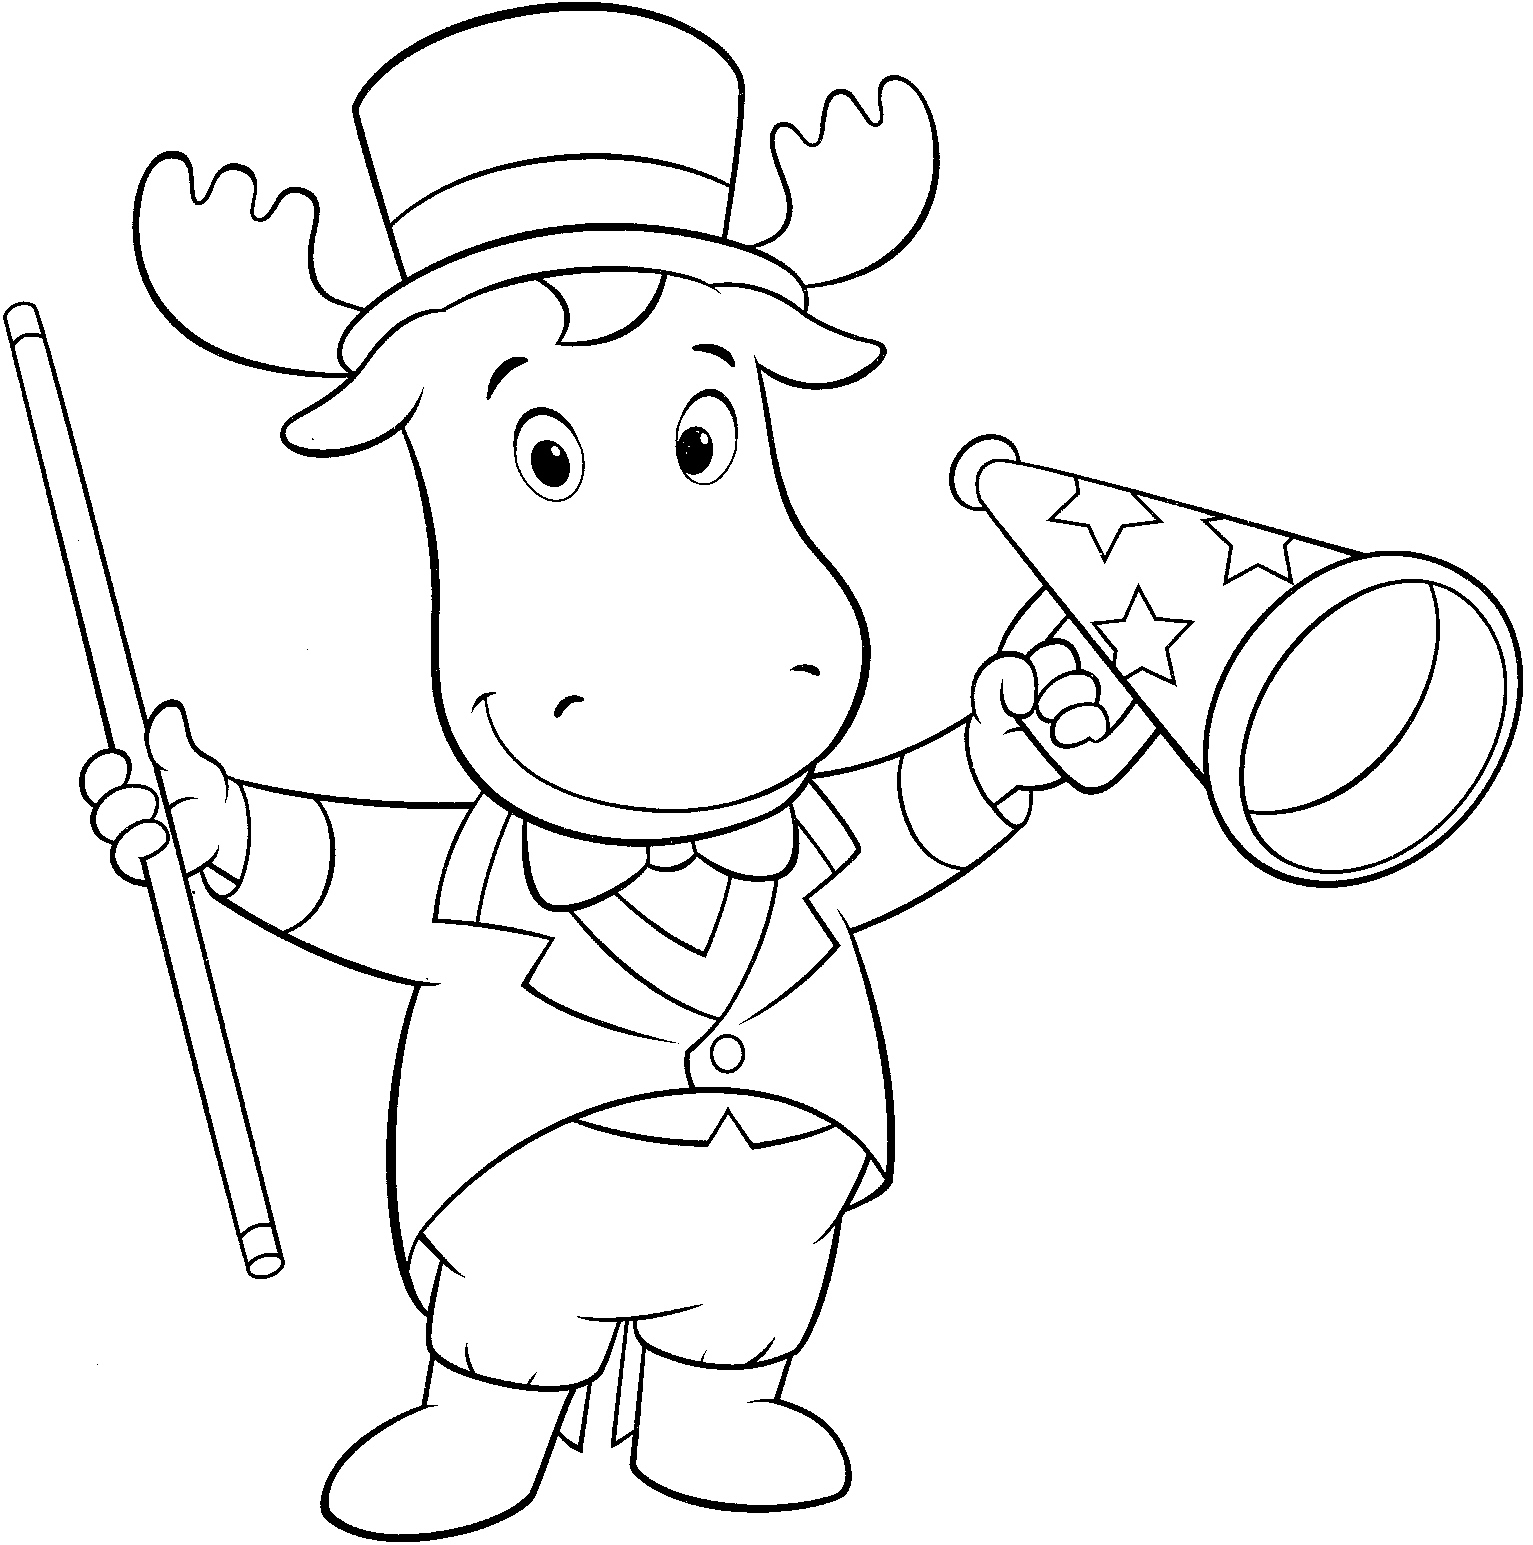 Backyardigans Tyrone Coloring Pages